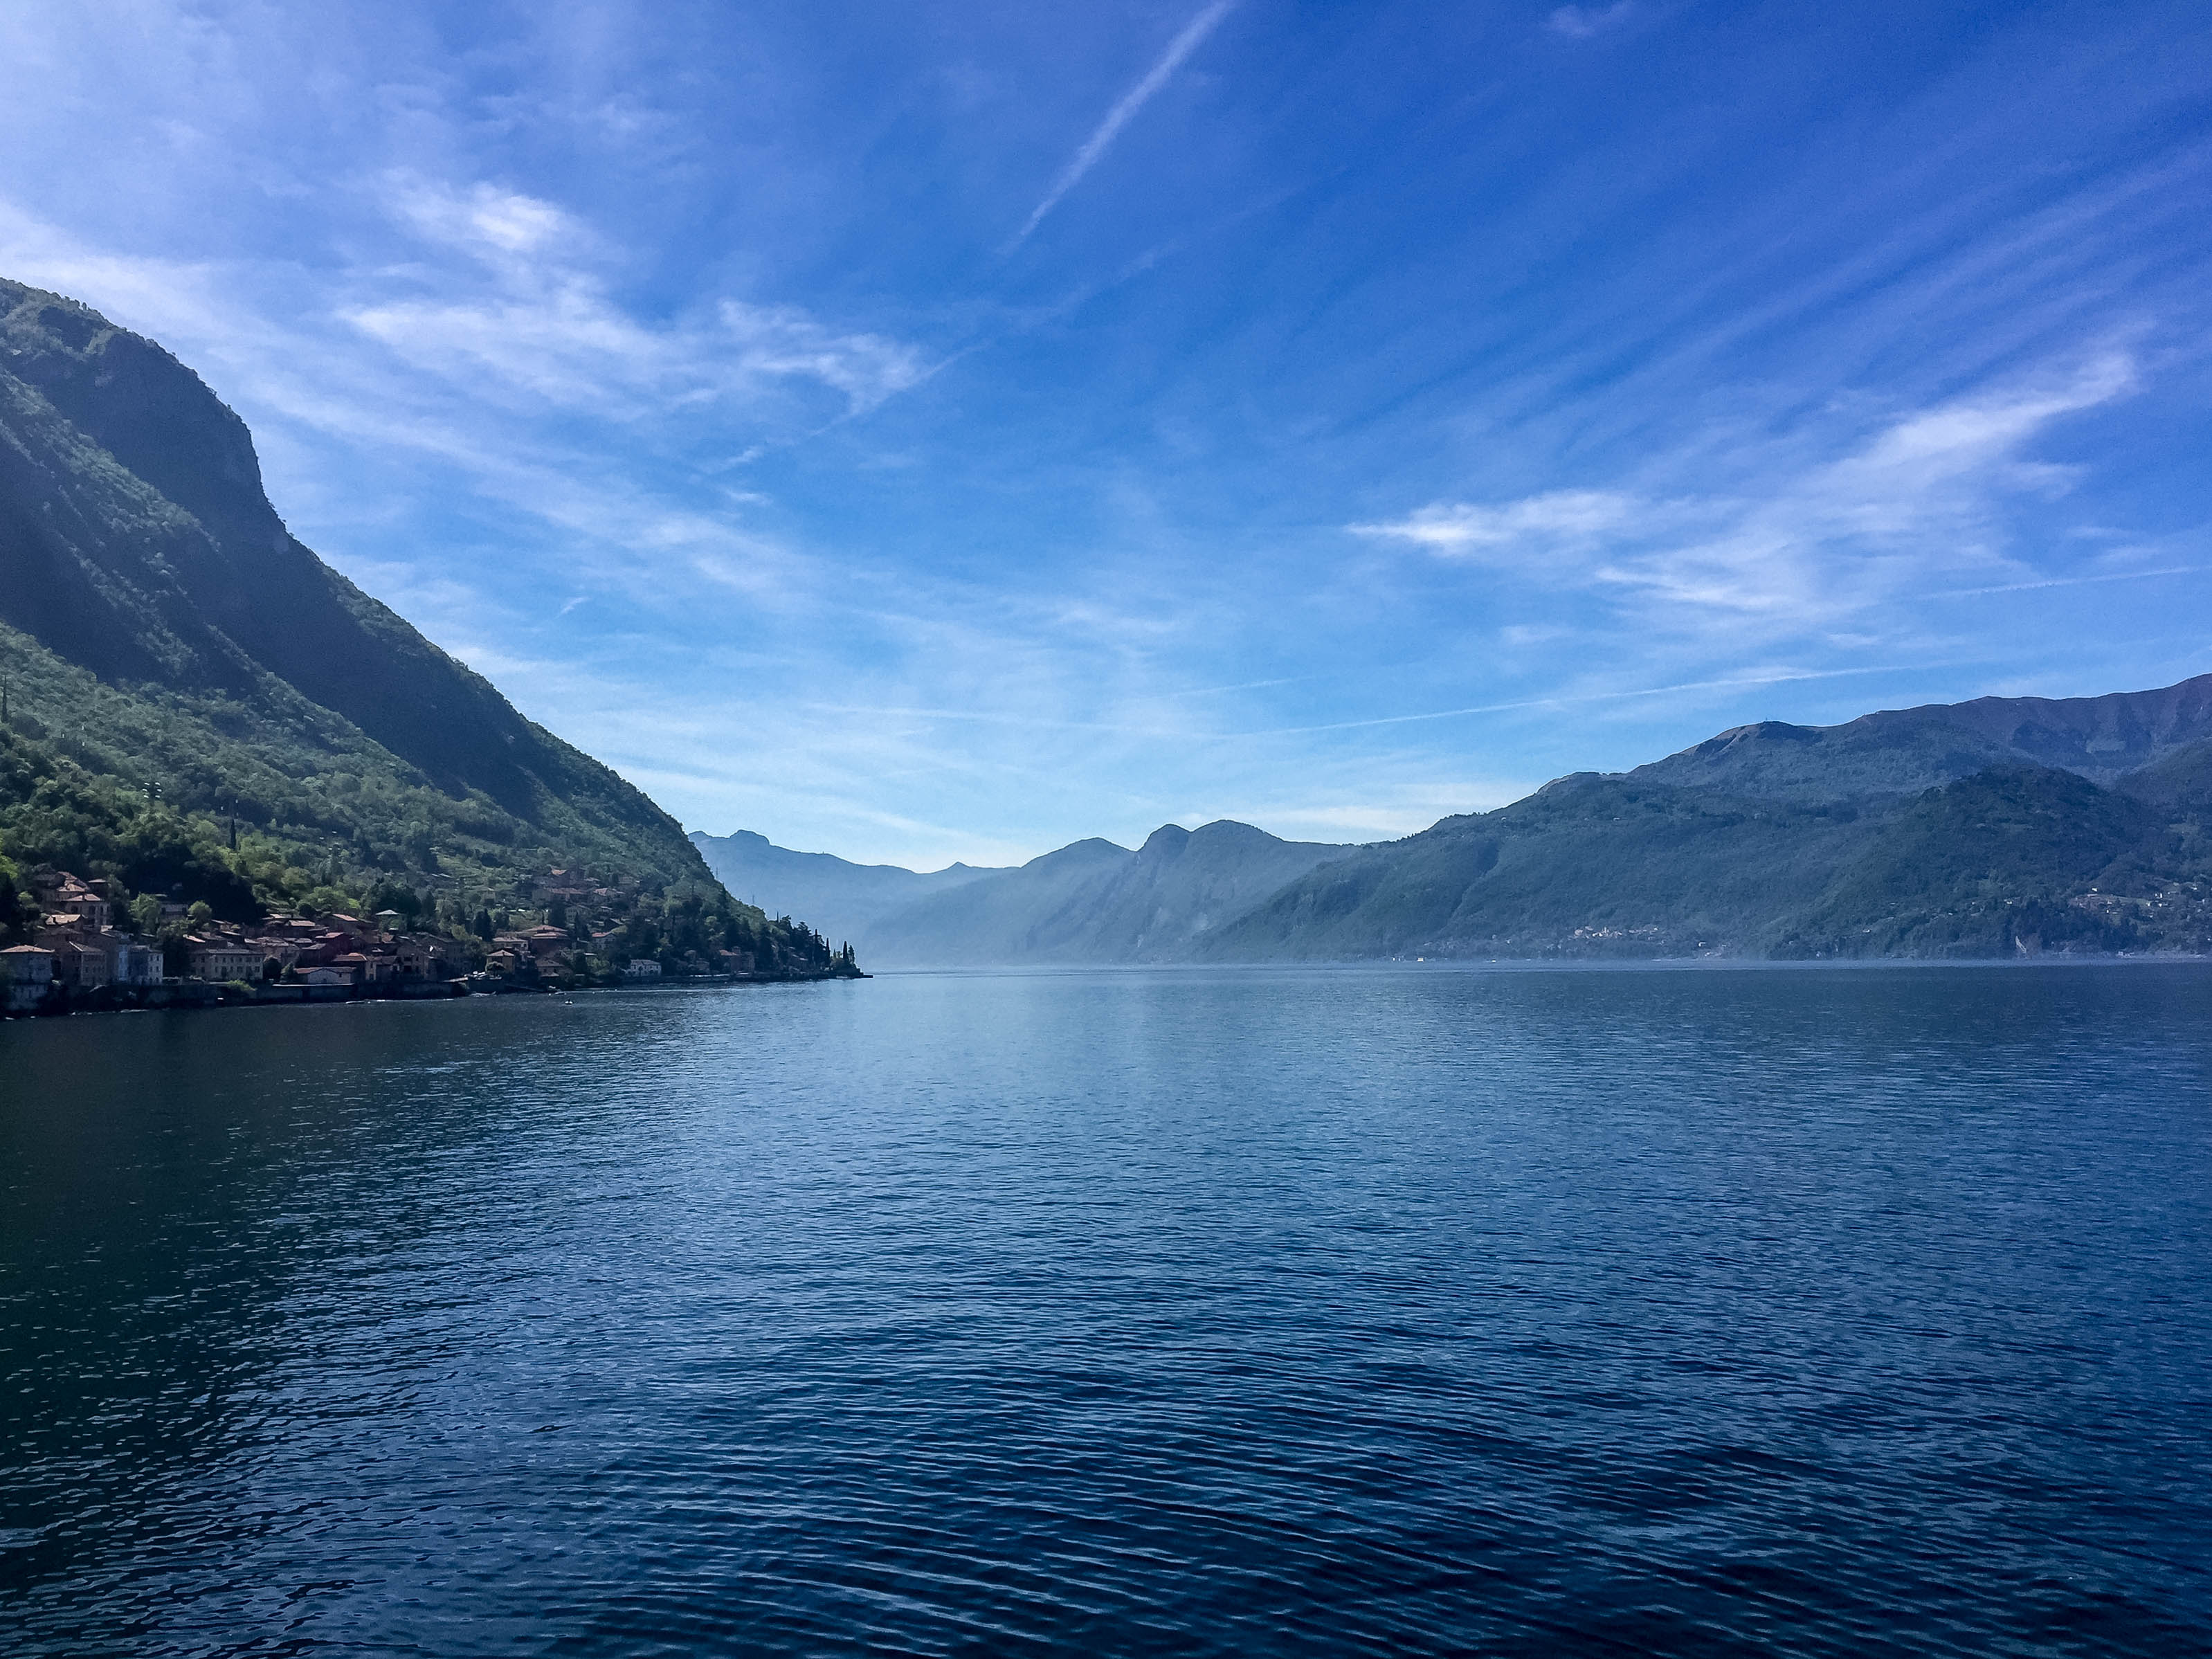 lake views varenna uninterrupted lakeview como italy airtransat experiencetransat